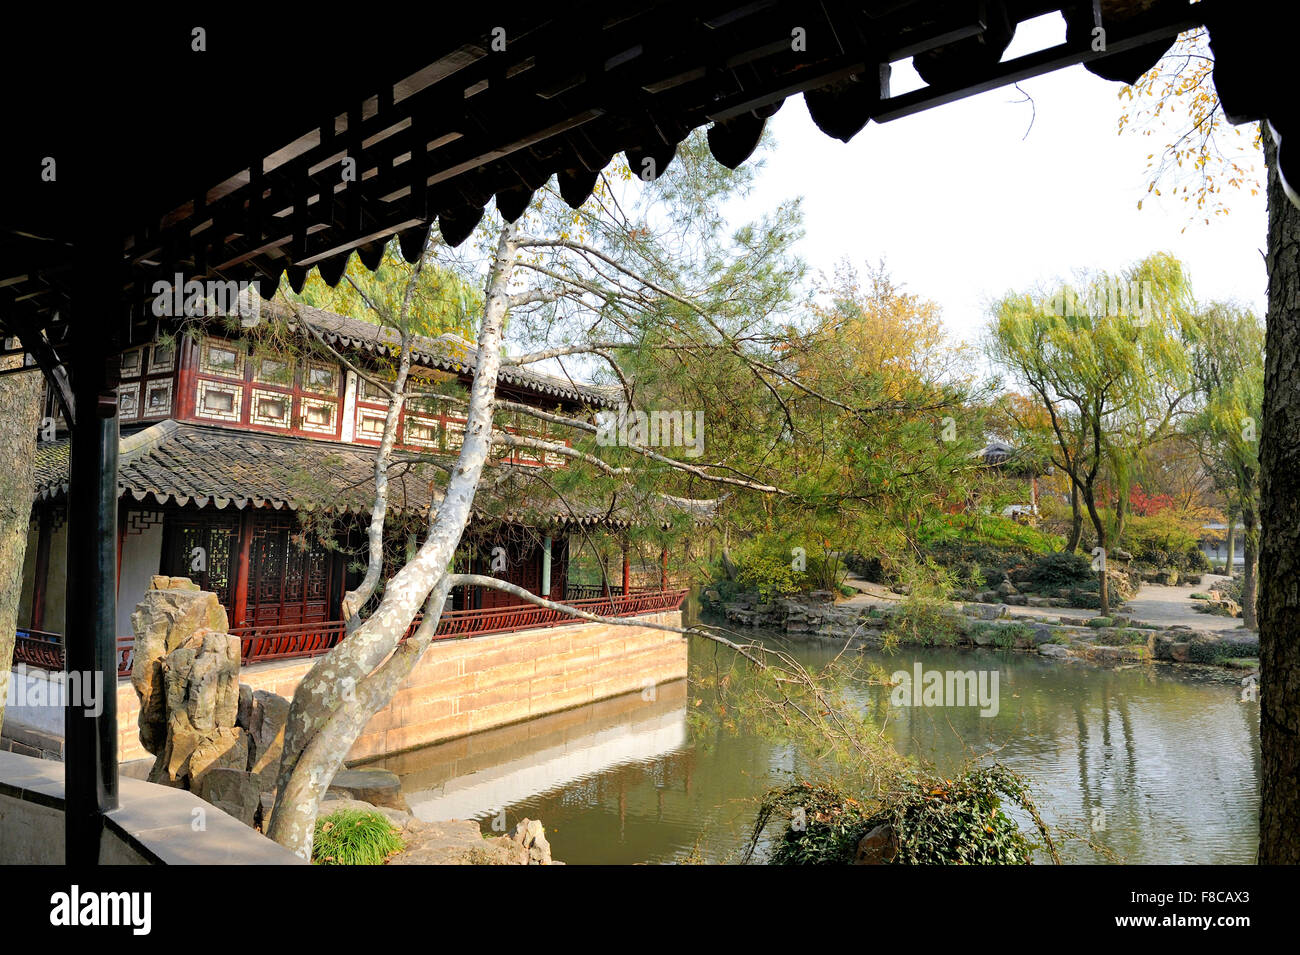 Garden of the Humble Administrator , Suzhou, China. This is an UNESCO World Heritage Site - Stock Image